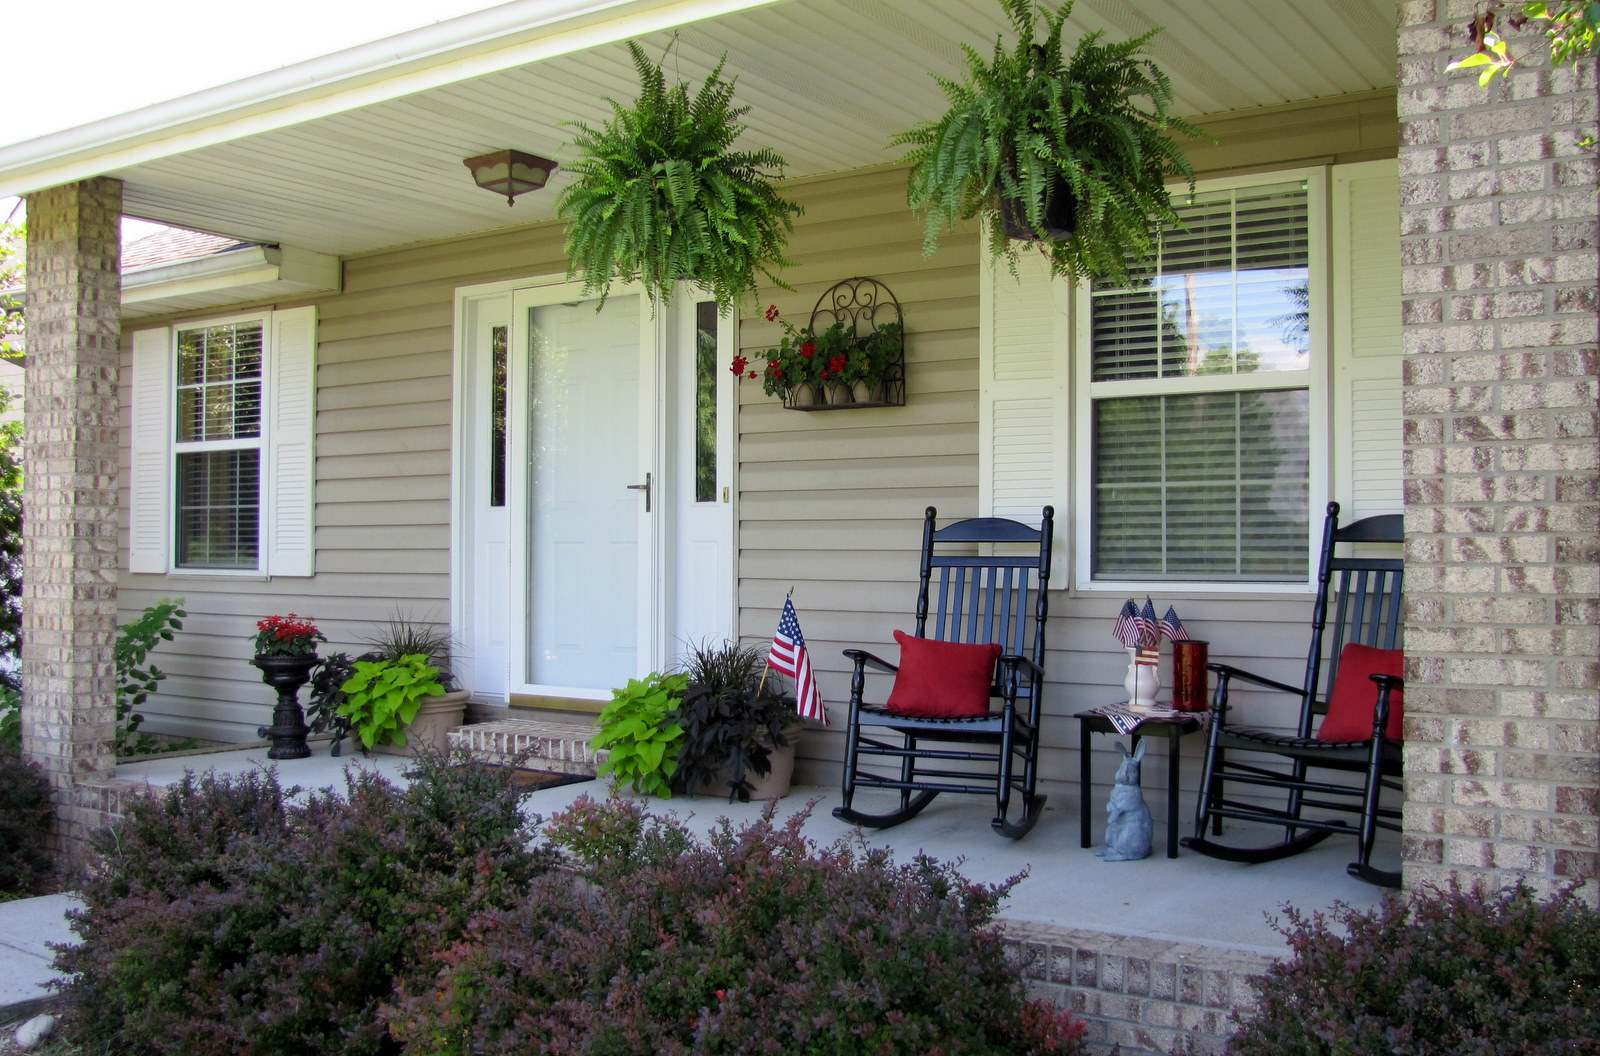 Designer Front Porch Ideas for Small Houses